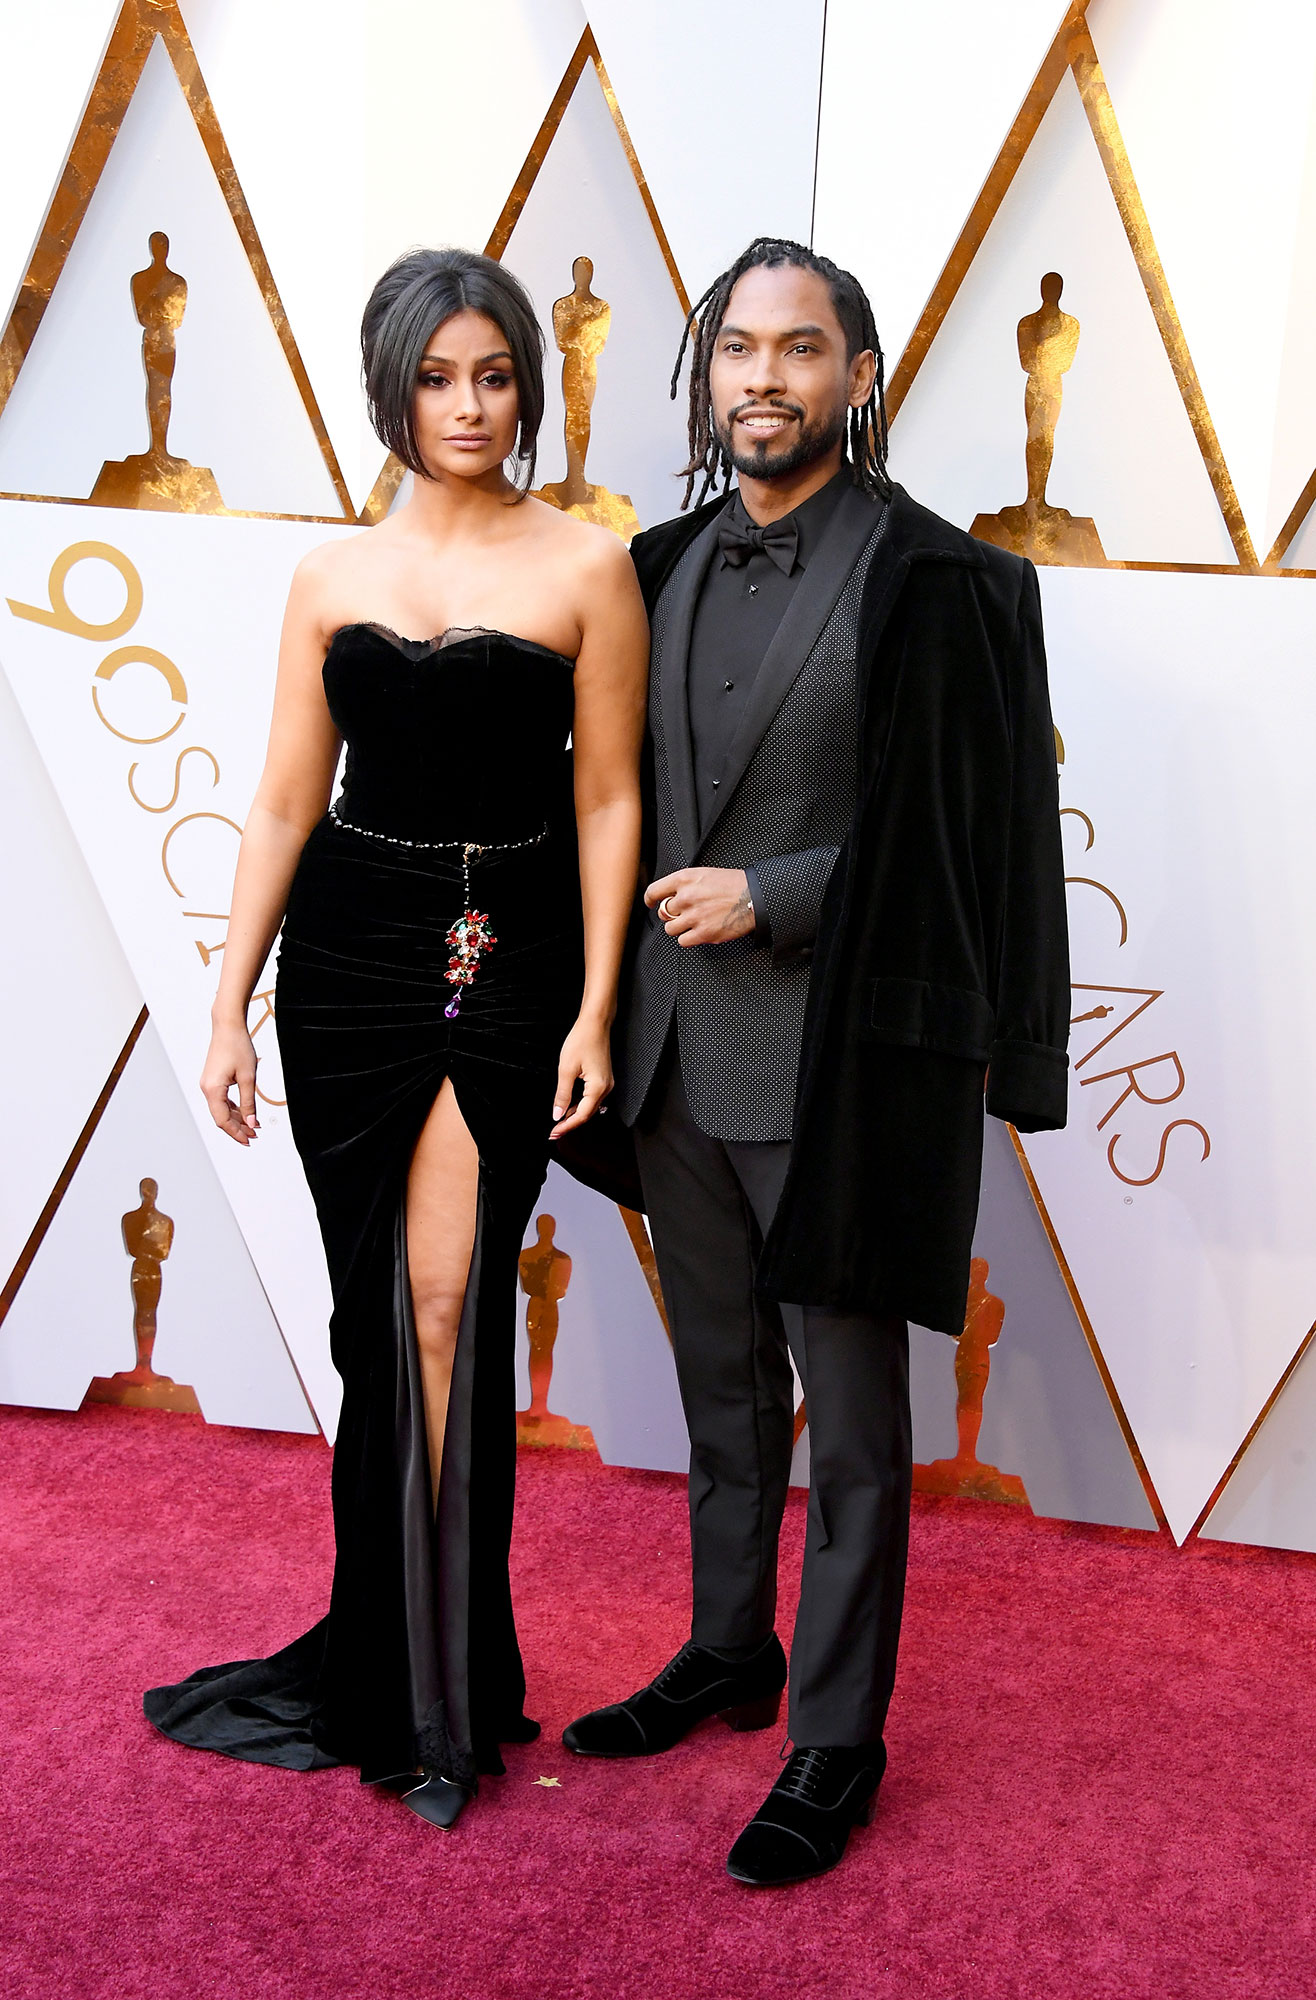 Nazanin Mandi (L) and Miguel - The R&B singer and the actress got married on November 25. Miguel has known Mandi since he was 18, and they went on their first date in 2005.